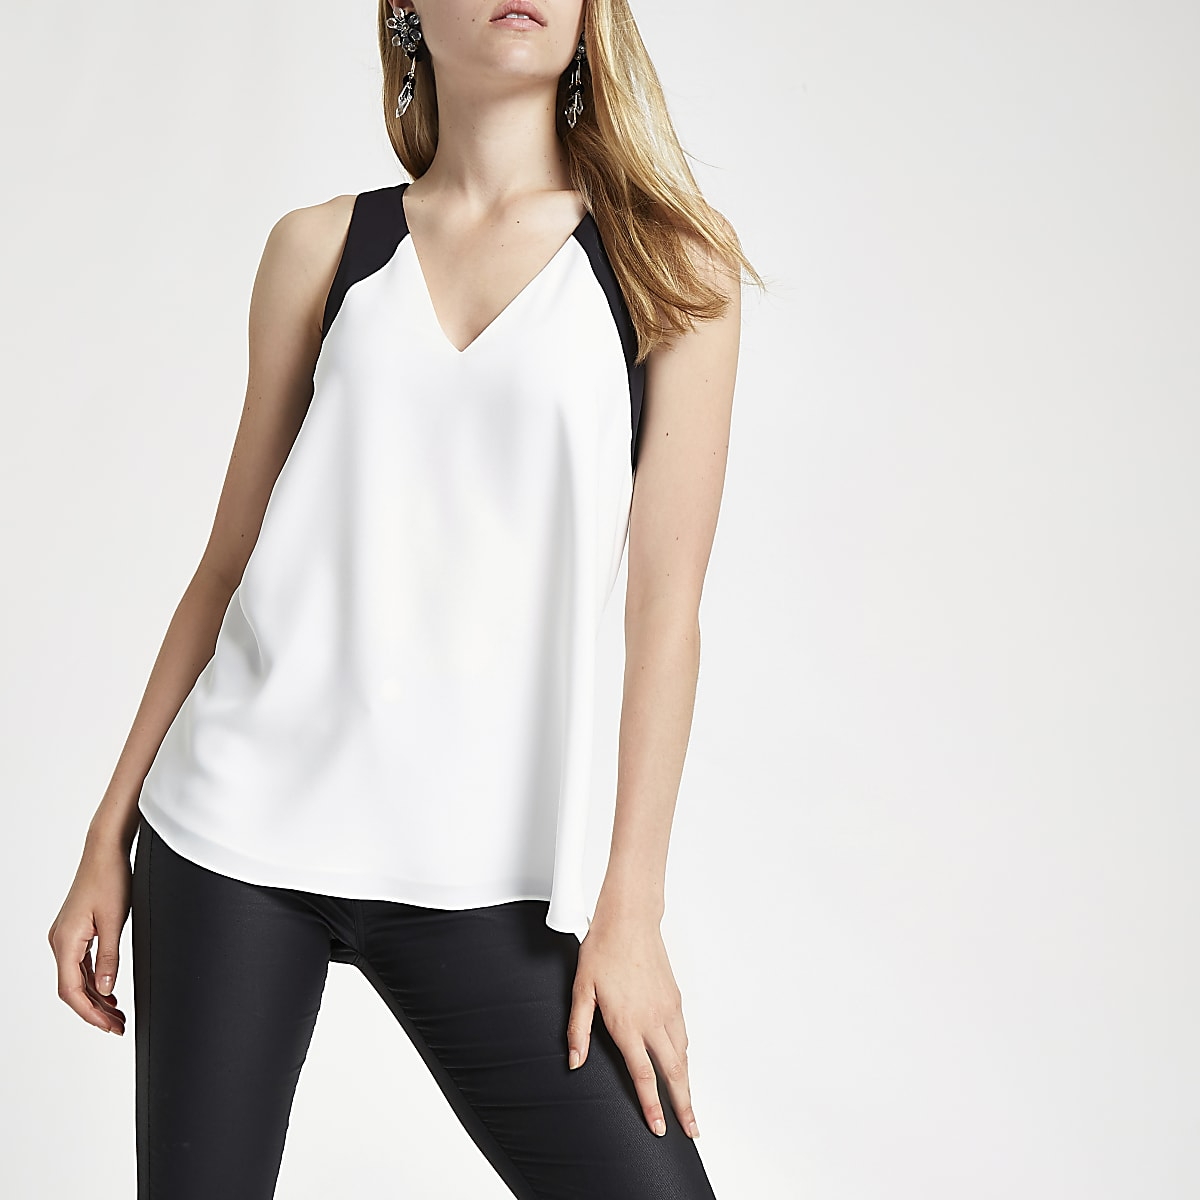 Cream V neck contrast vest top